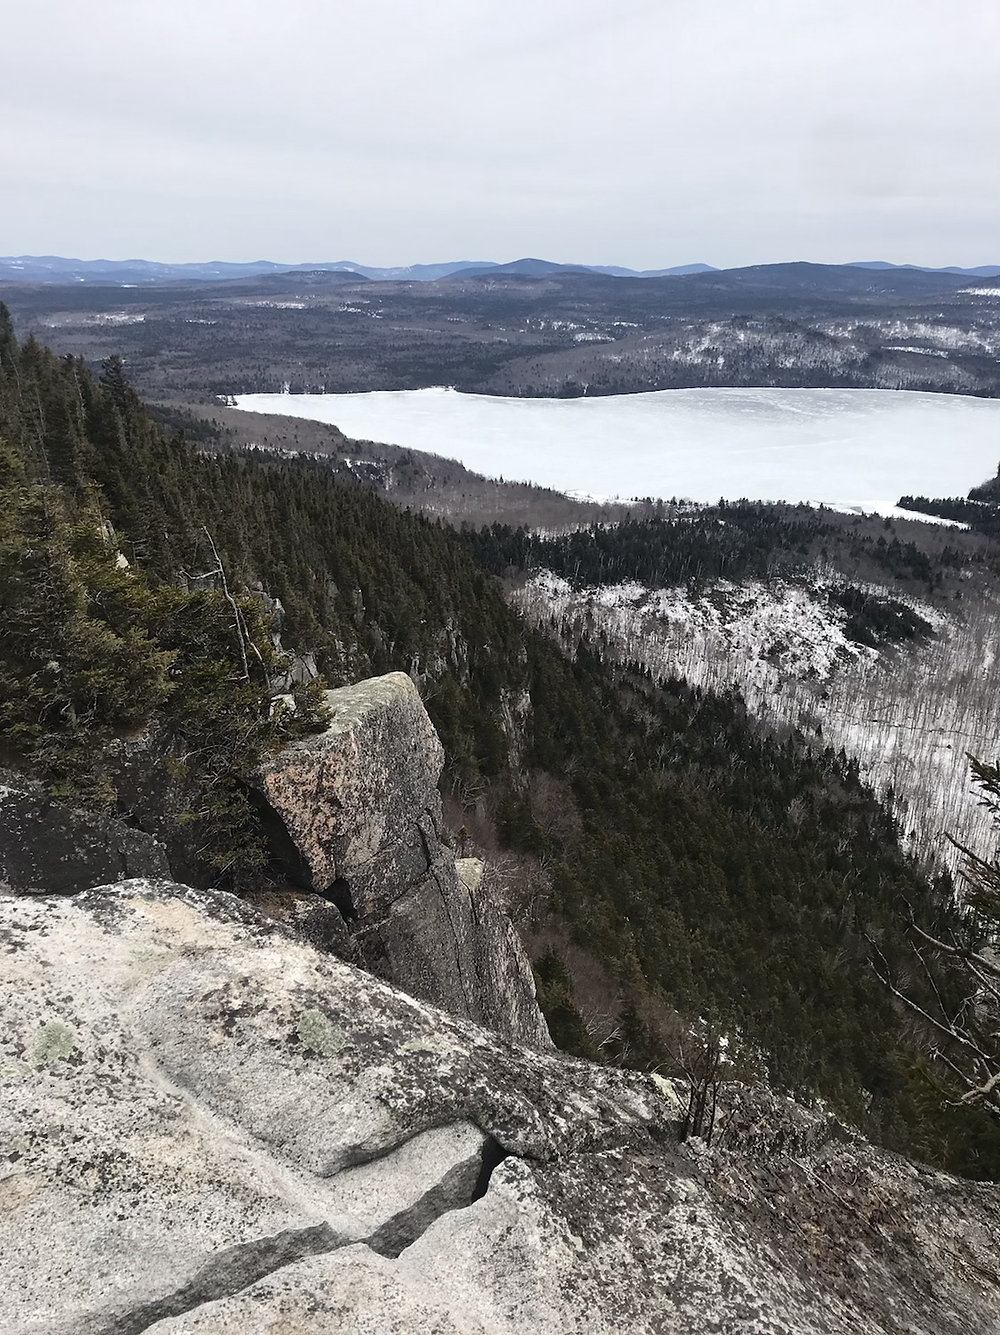 View from Brousseau Mountain